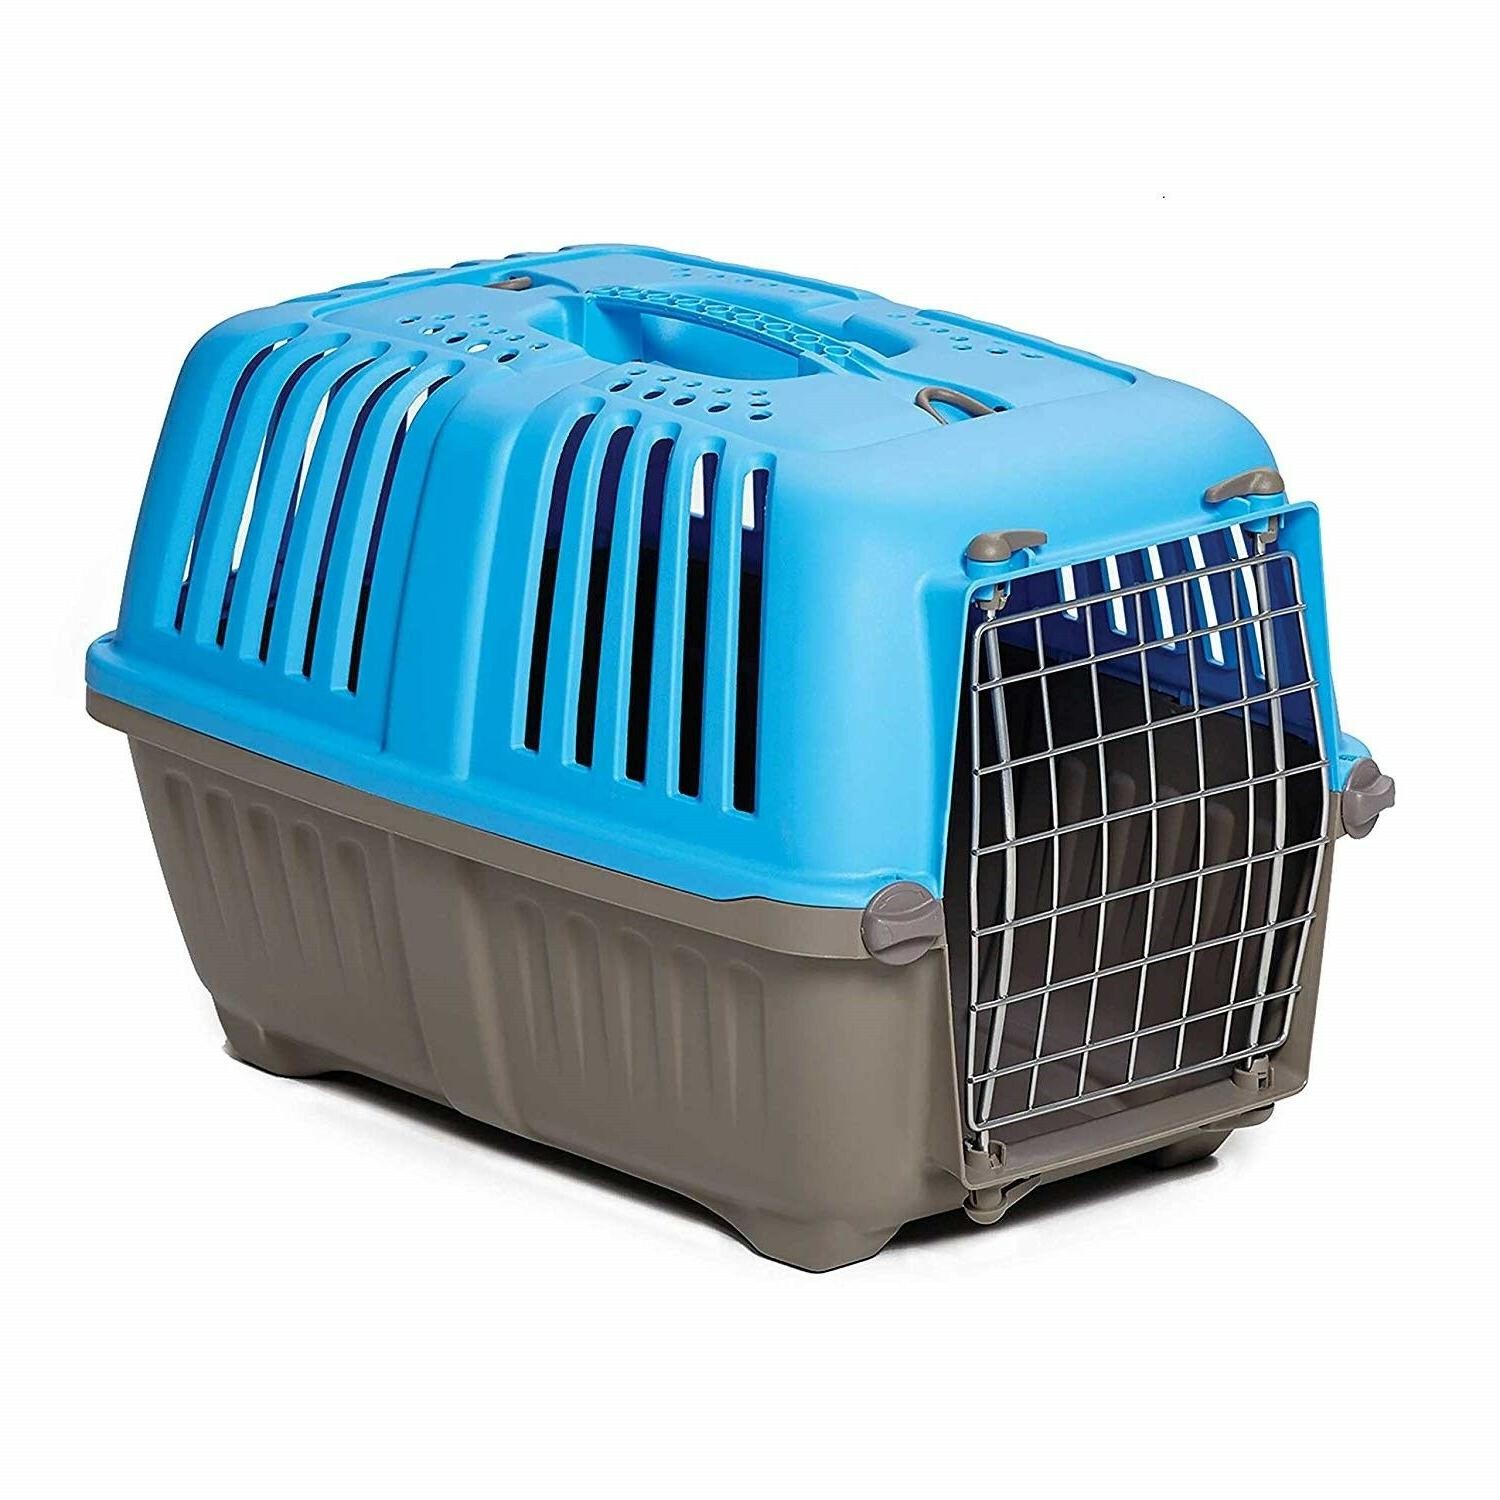 Ess Pet For Dogs Cats for Home Or Traveling Handle 19 Inch Hard